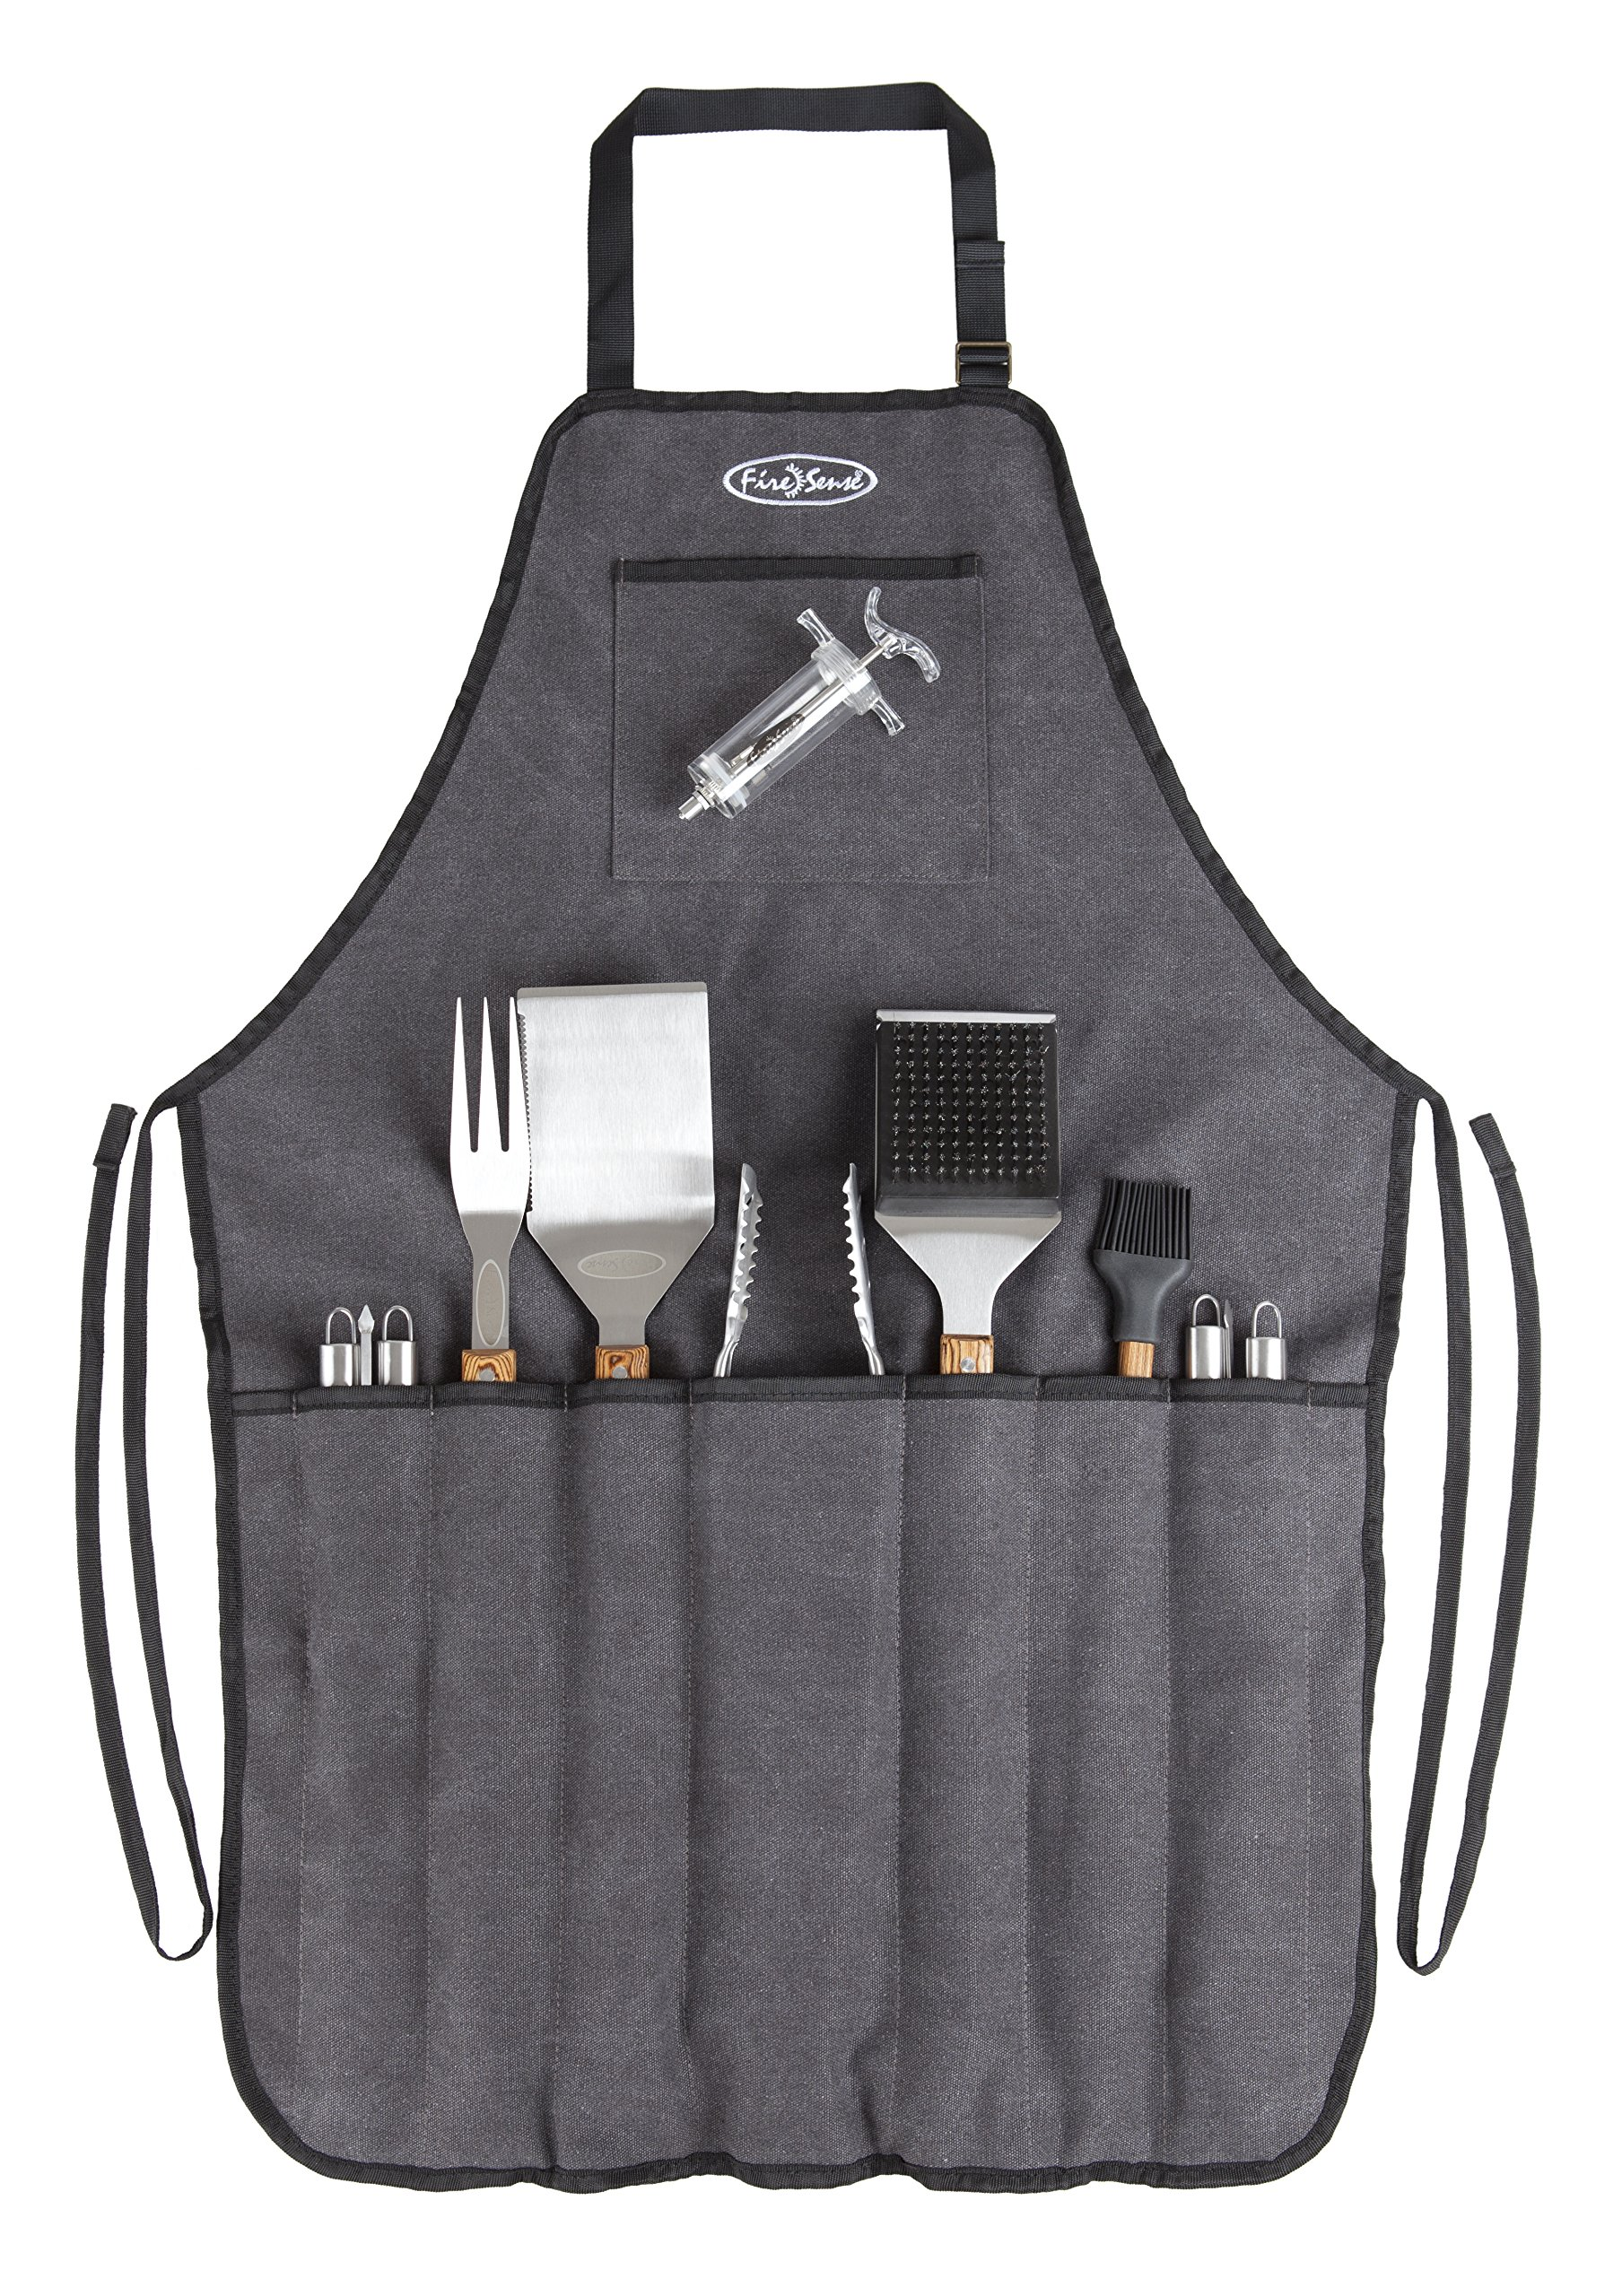 Fire Sense 61932 Elite Stainless Steel BBQ Tool Set by Fire Sense